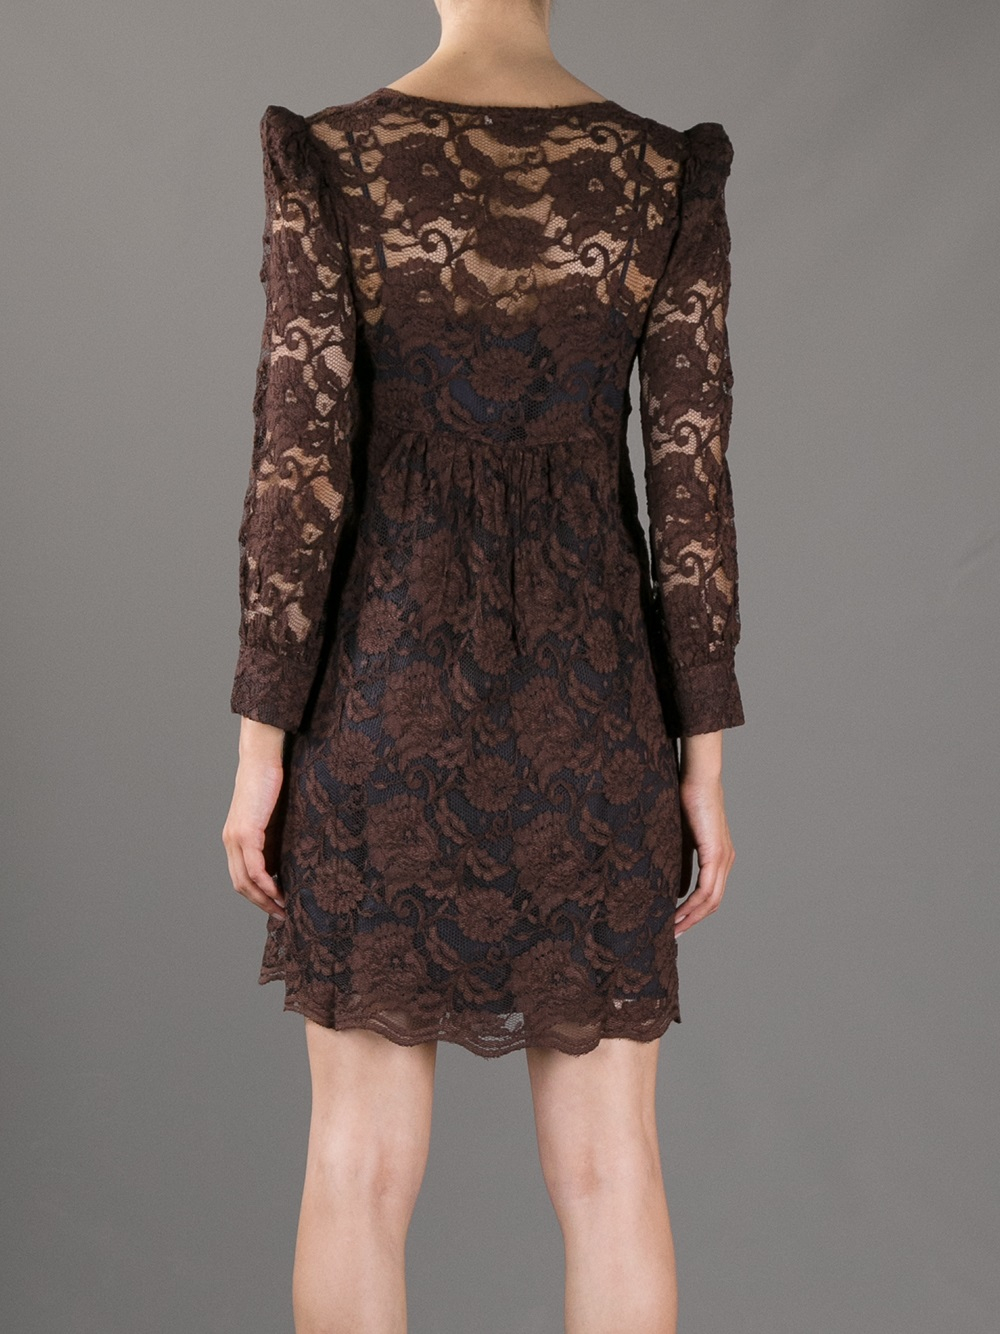 to wear - Lace brown dresses video